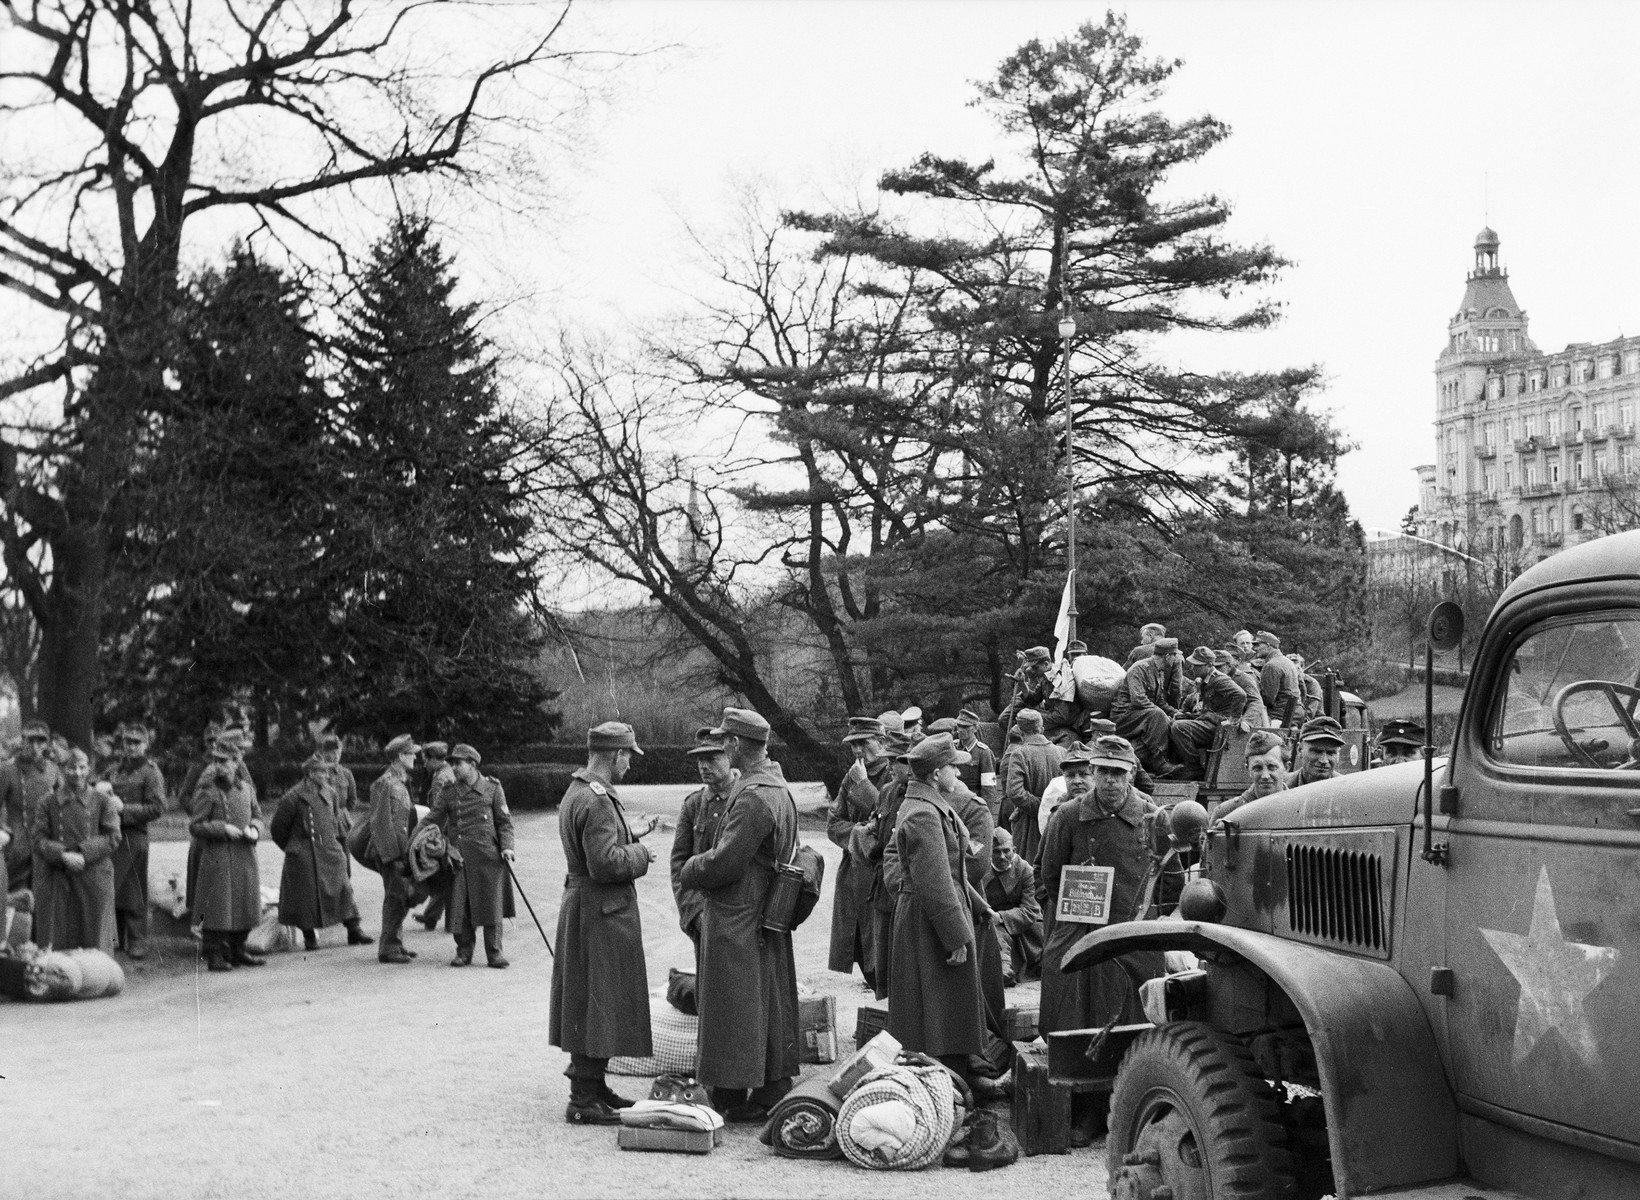 German POWs, who have been provided medical care by U.S. Army medical personnel of the 45th Evacuation Hospital, assemble before their transfer elsewhere.